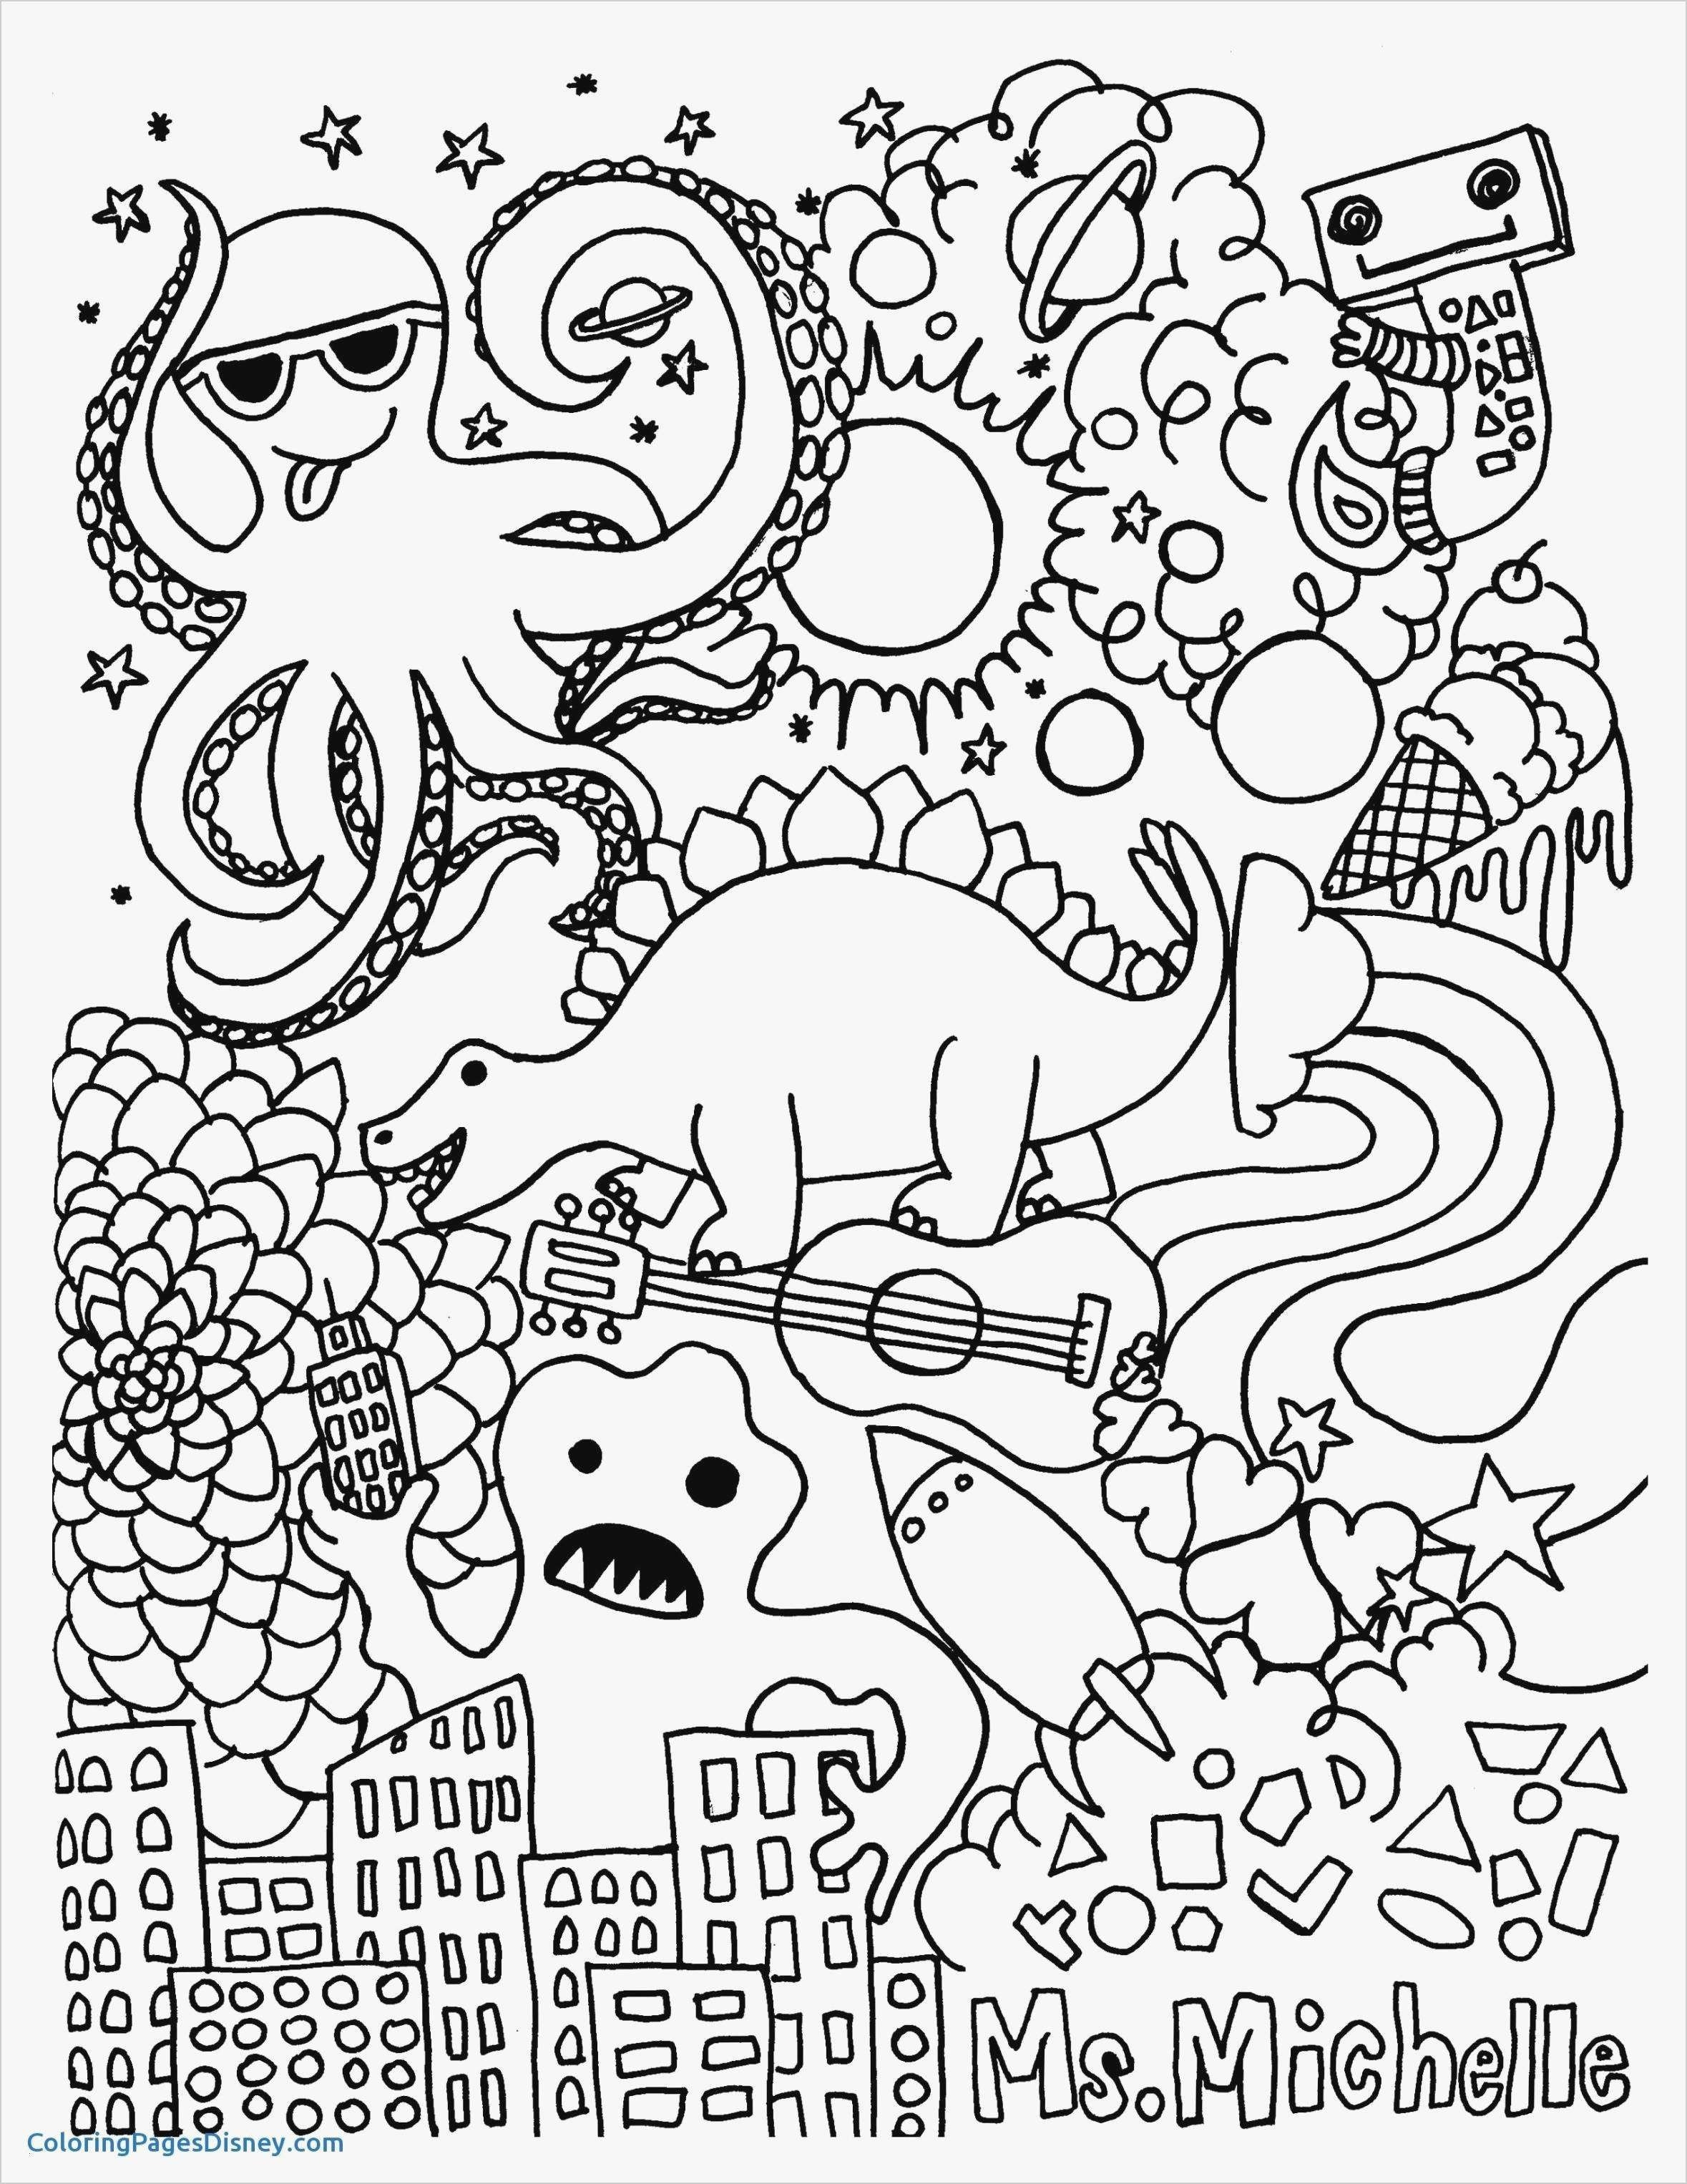 Coloring Book World: Outstanding Free Printable Coloring Pages For - Free Printable Coloring Pages For March